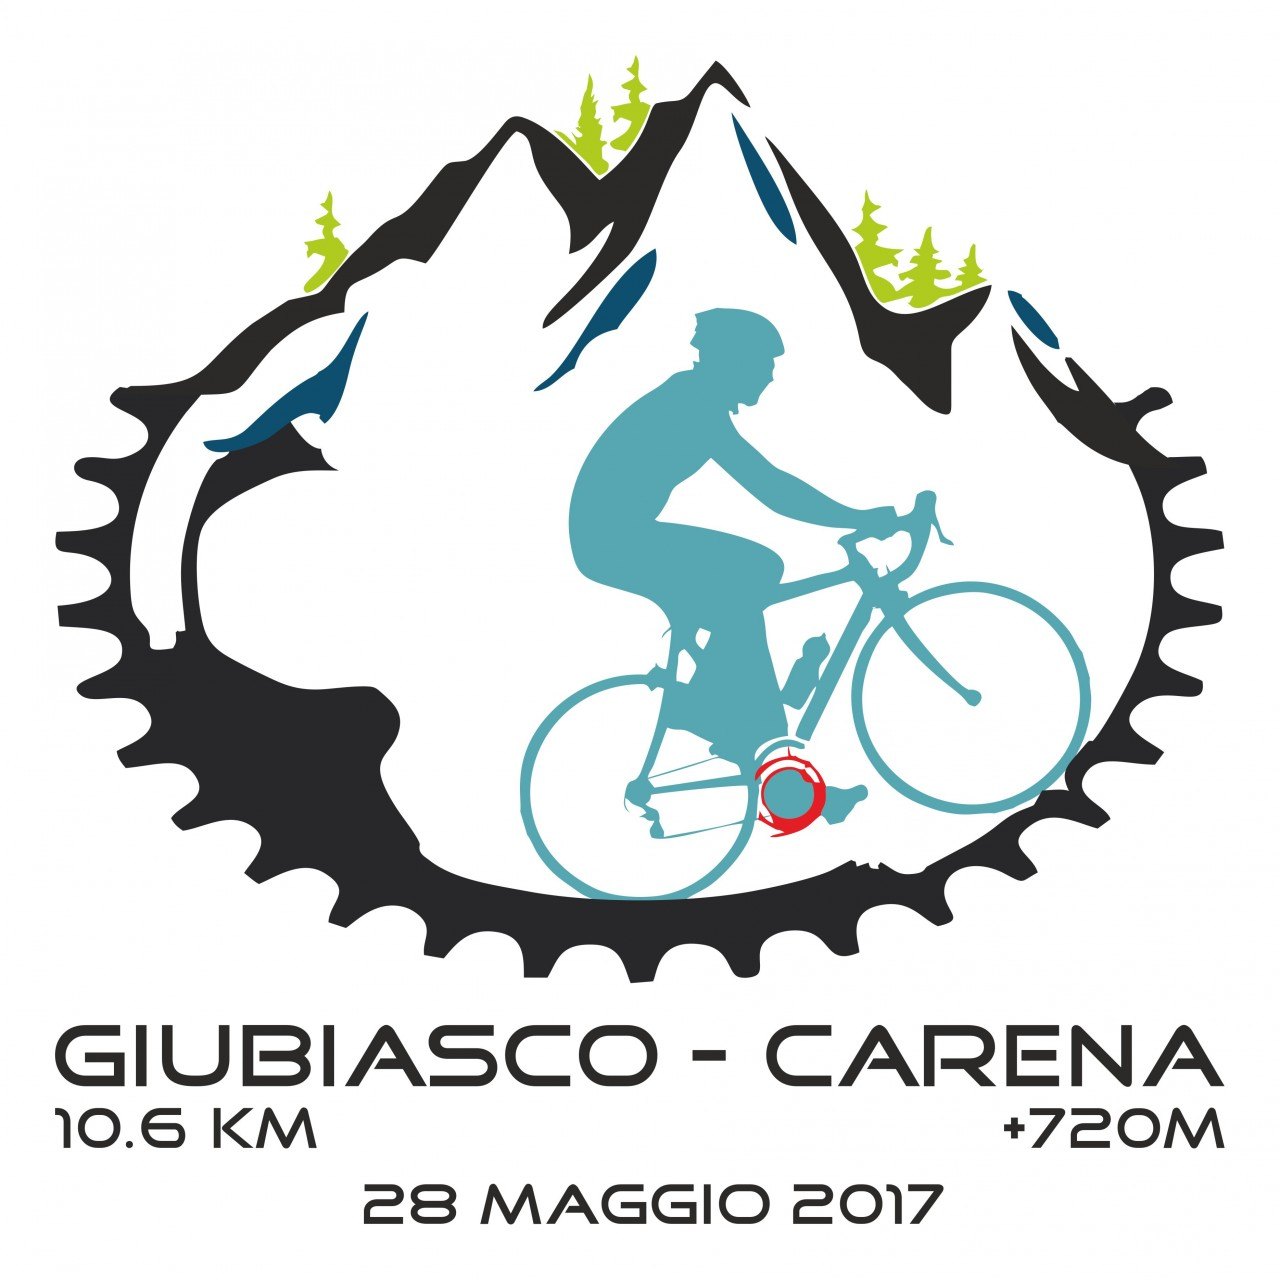 Giubiasco-Carena